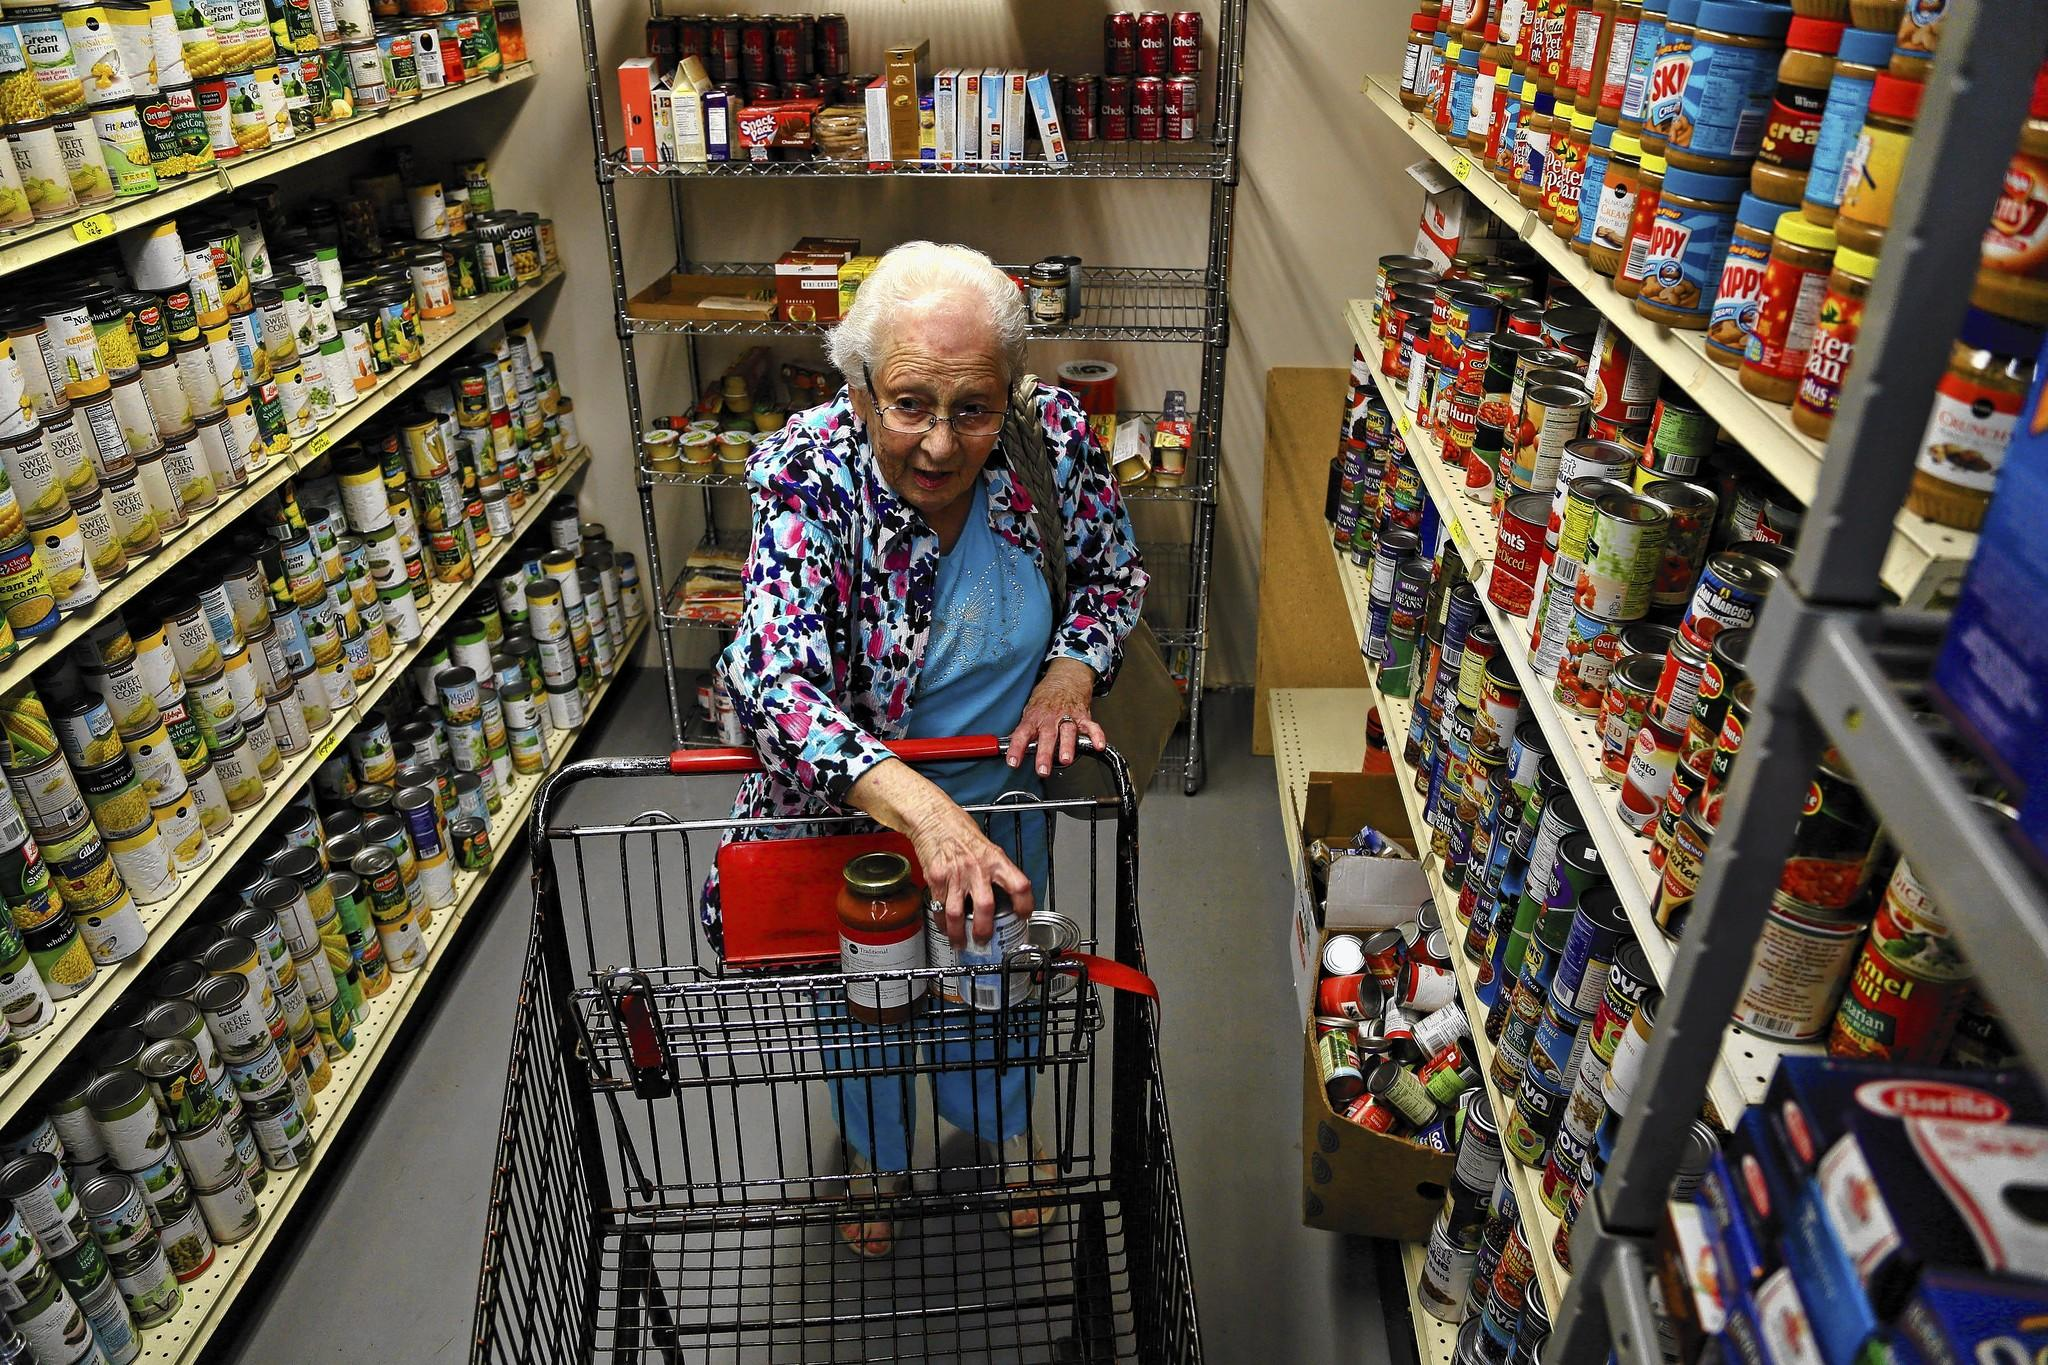 "King's Point resident Elinor Lichten, 87, shops at the Jacobson Family Food Pantry in Delray Beach on Tuesday, Dec. 10, 2013. Lichten said, ""They help keep me alive."" She went on to say, ""It's the seniors that feel the crunch of everything."" Lichten has been a client for the past 4-5 years, but has been shopping at the new Delray location since it opened in November 2012. Food Pantry Operations Manager Dennis Prisant says approximately 75 percent of their clients are seniors."